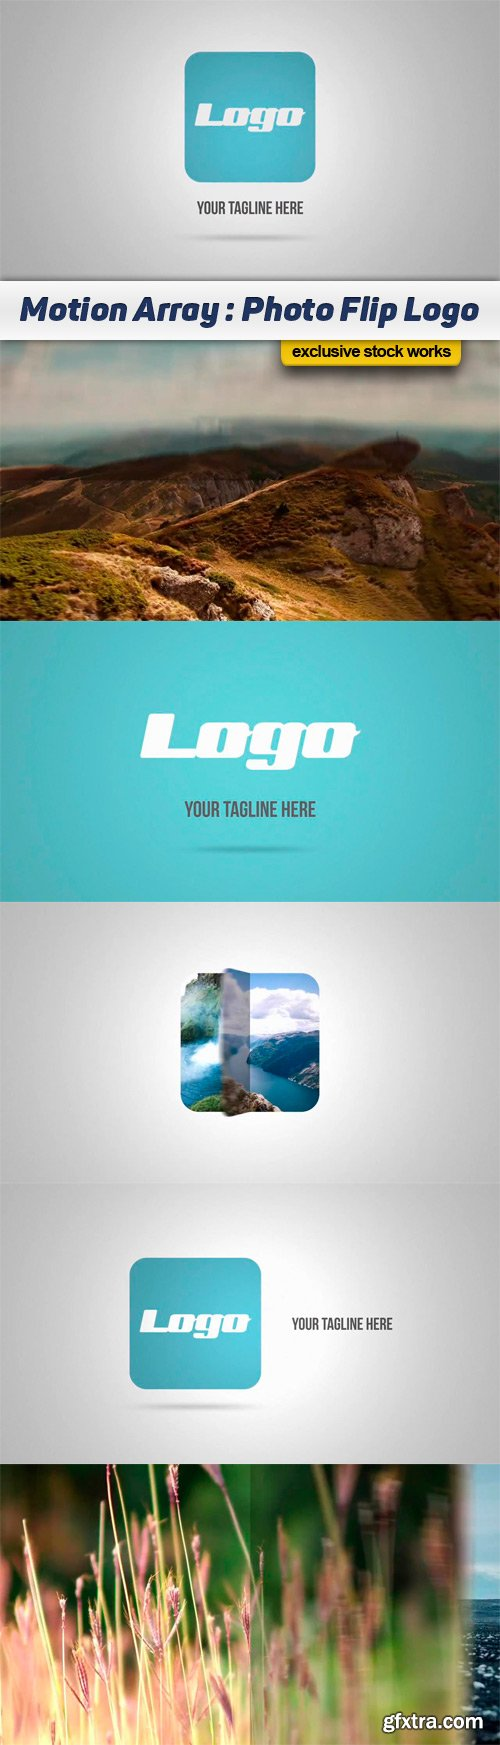 Motion Array - Photo Flip Logo After Effects Template